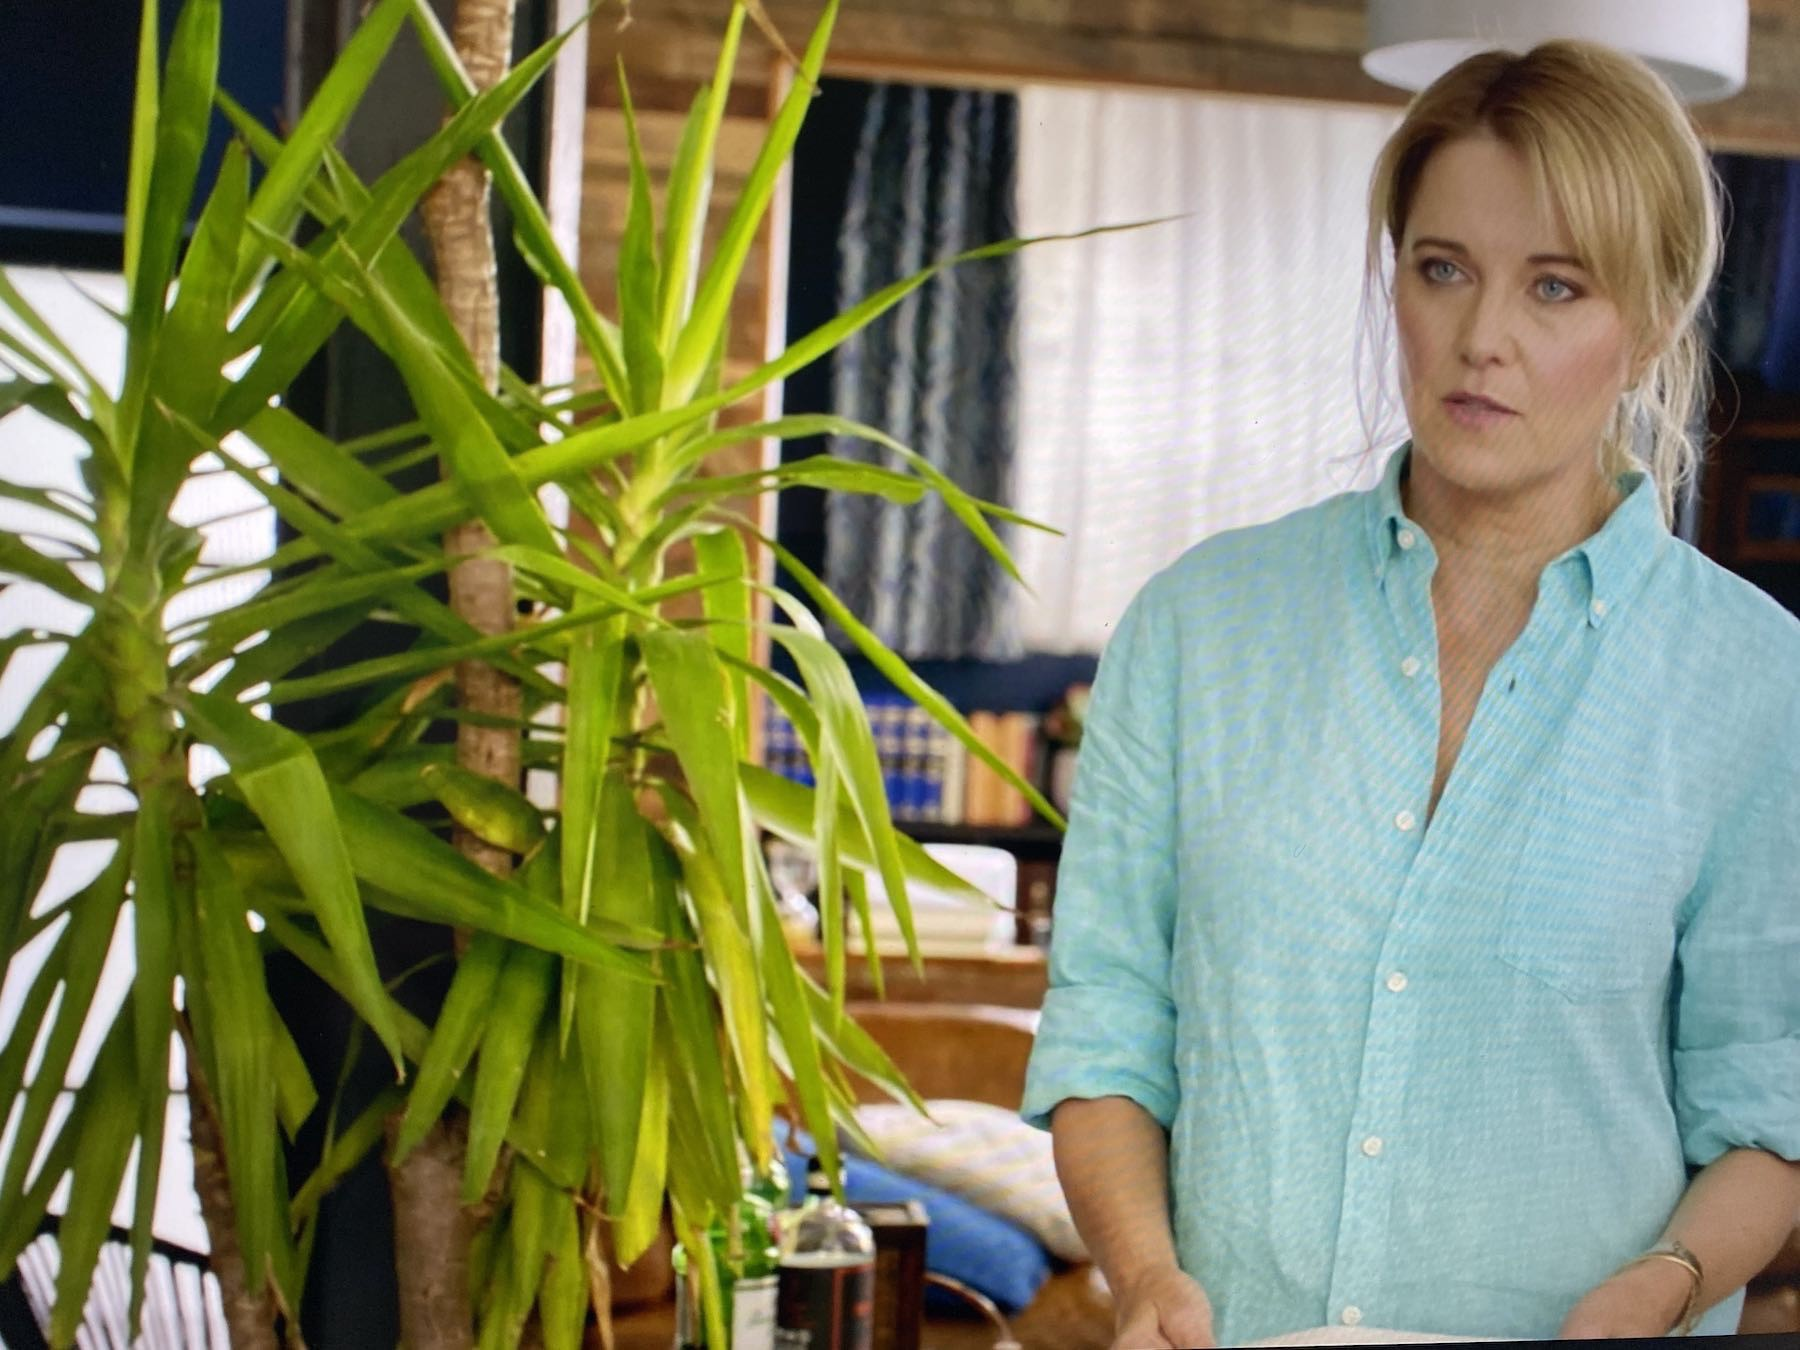 SCreenshot from My Life is Murder, showing Lucy Lawless as Alexa Crowe.